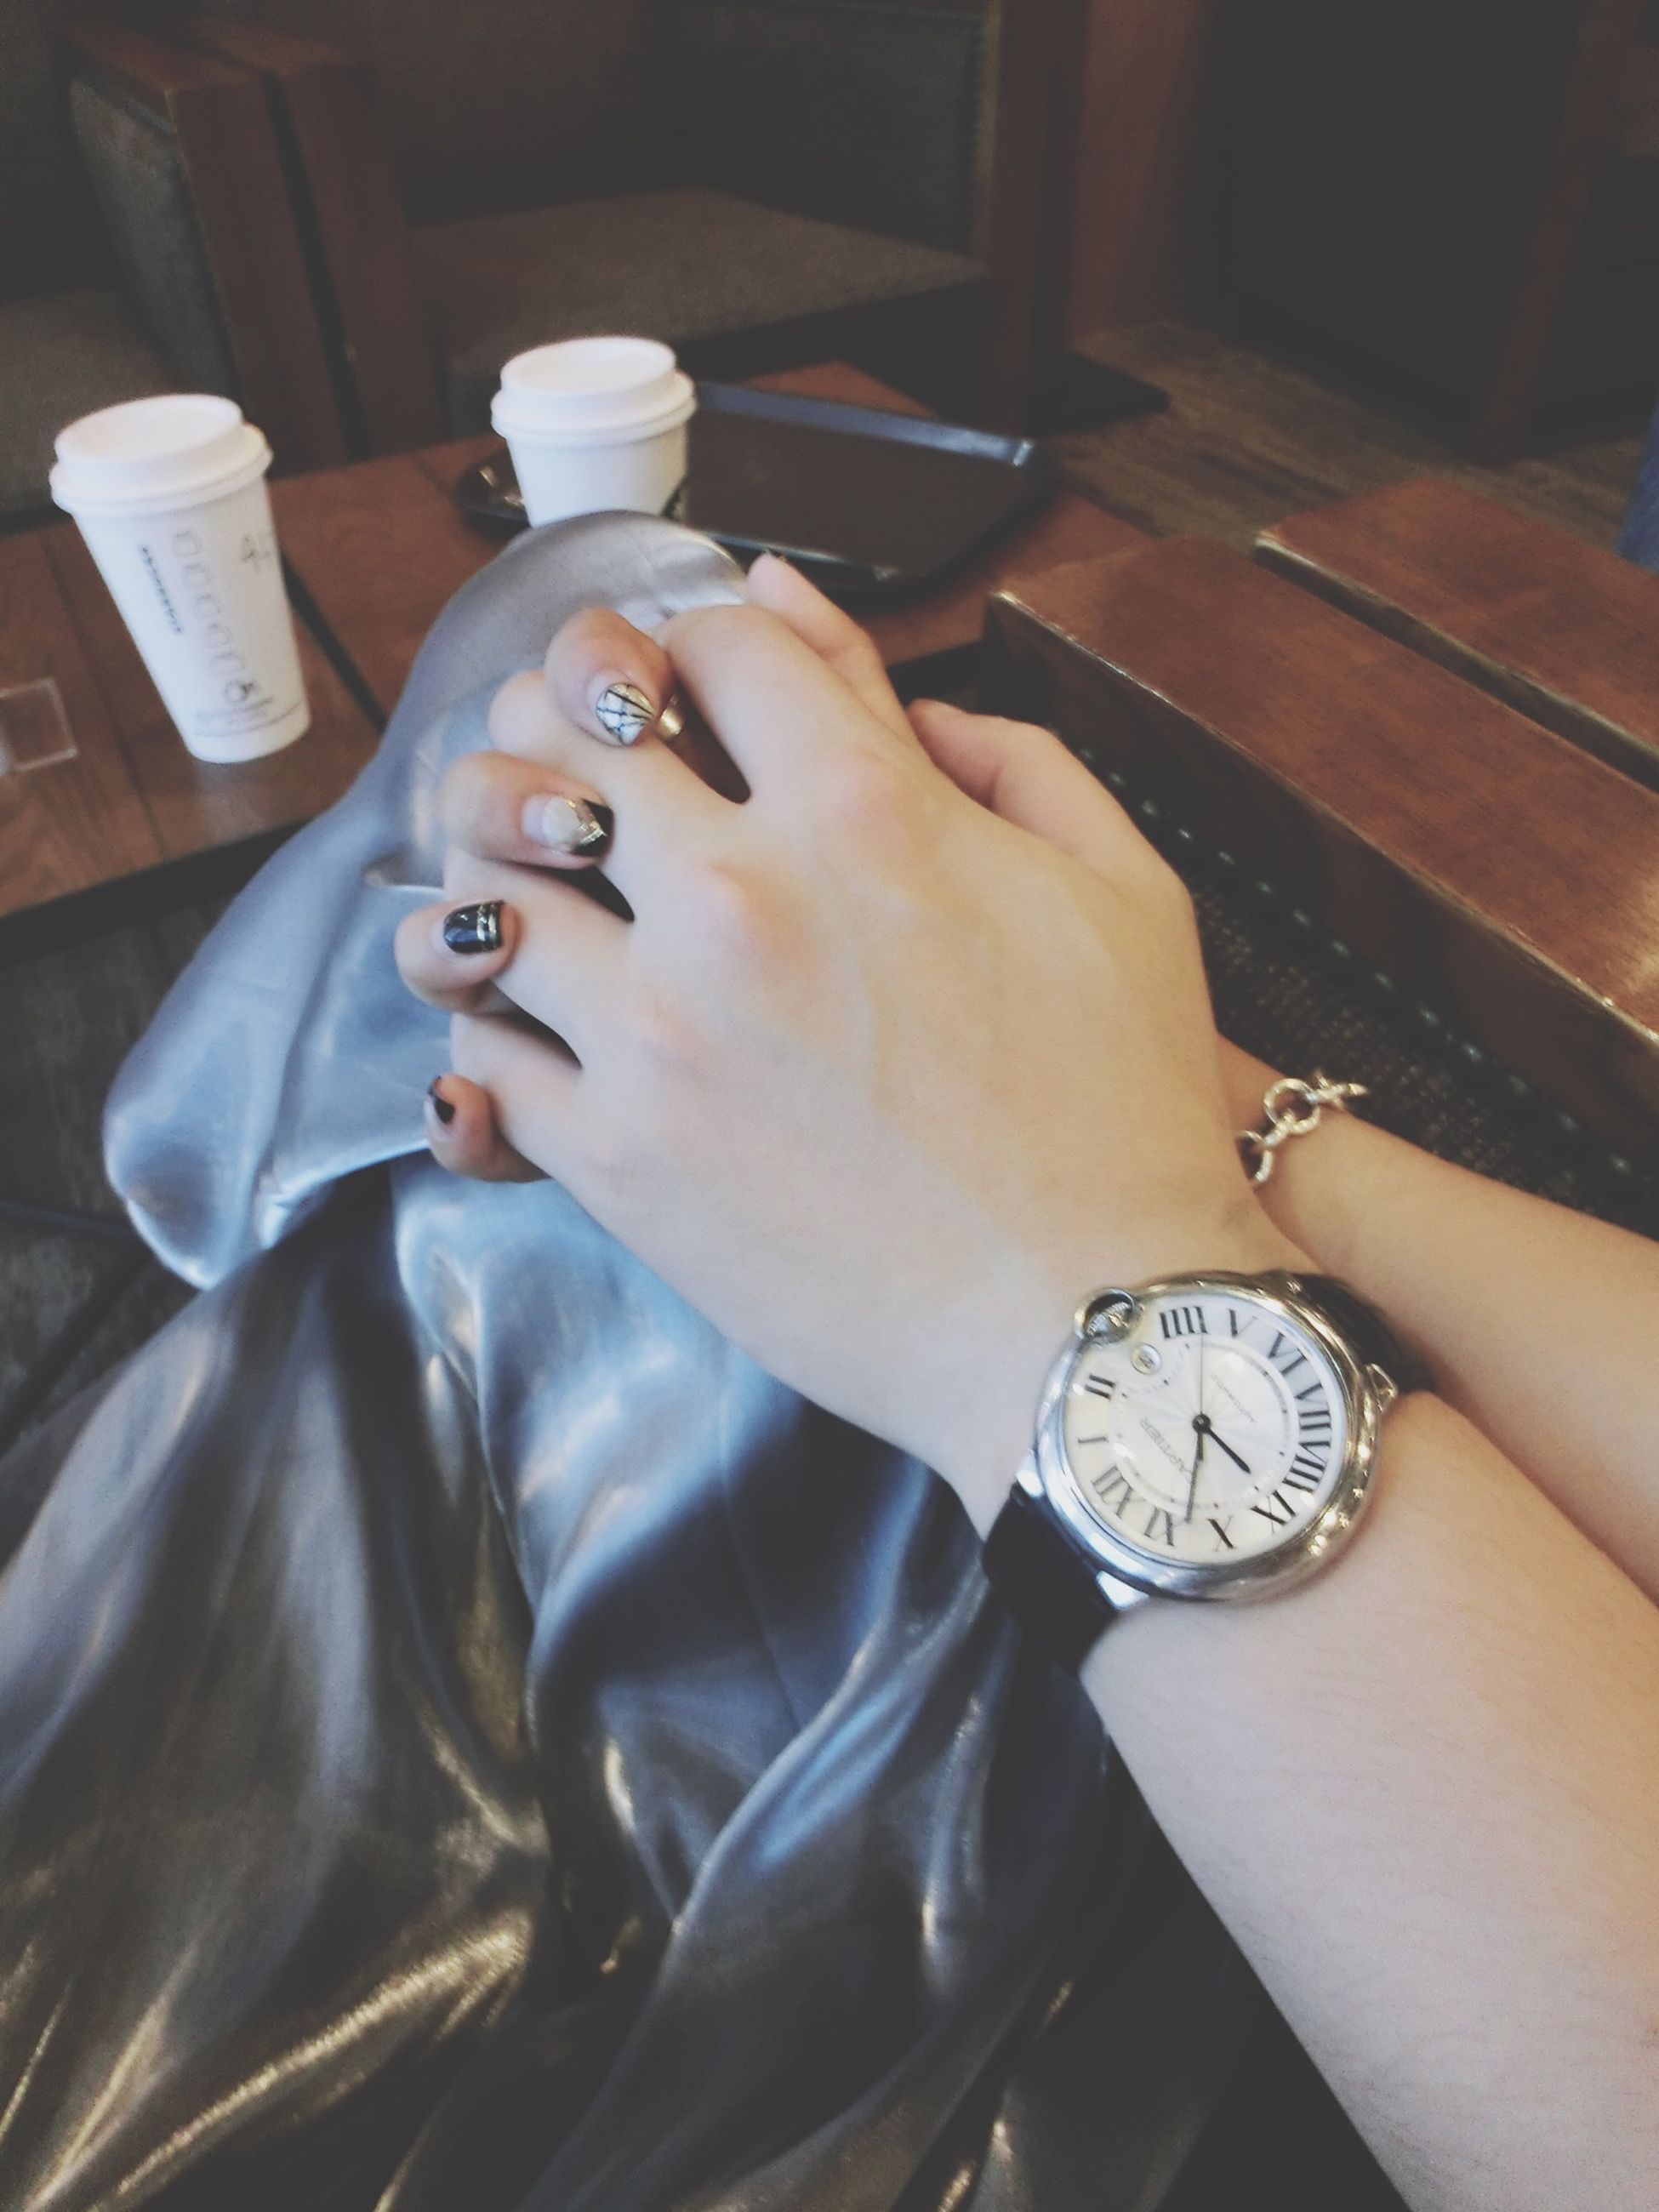 indoors, person, part of, holding, lifestyles, leisure activity, personal perspective, human finger, cropped, close-up, high angle view, unrecognizable person, table, home interior, men, wristwatch